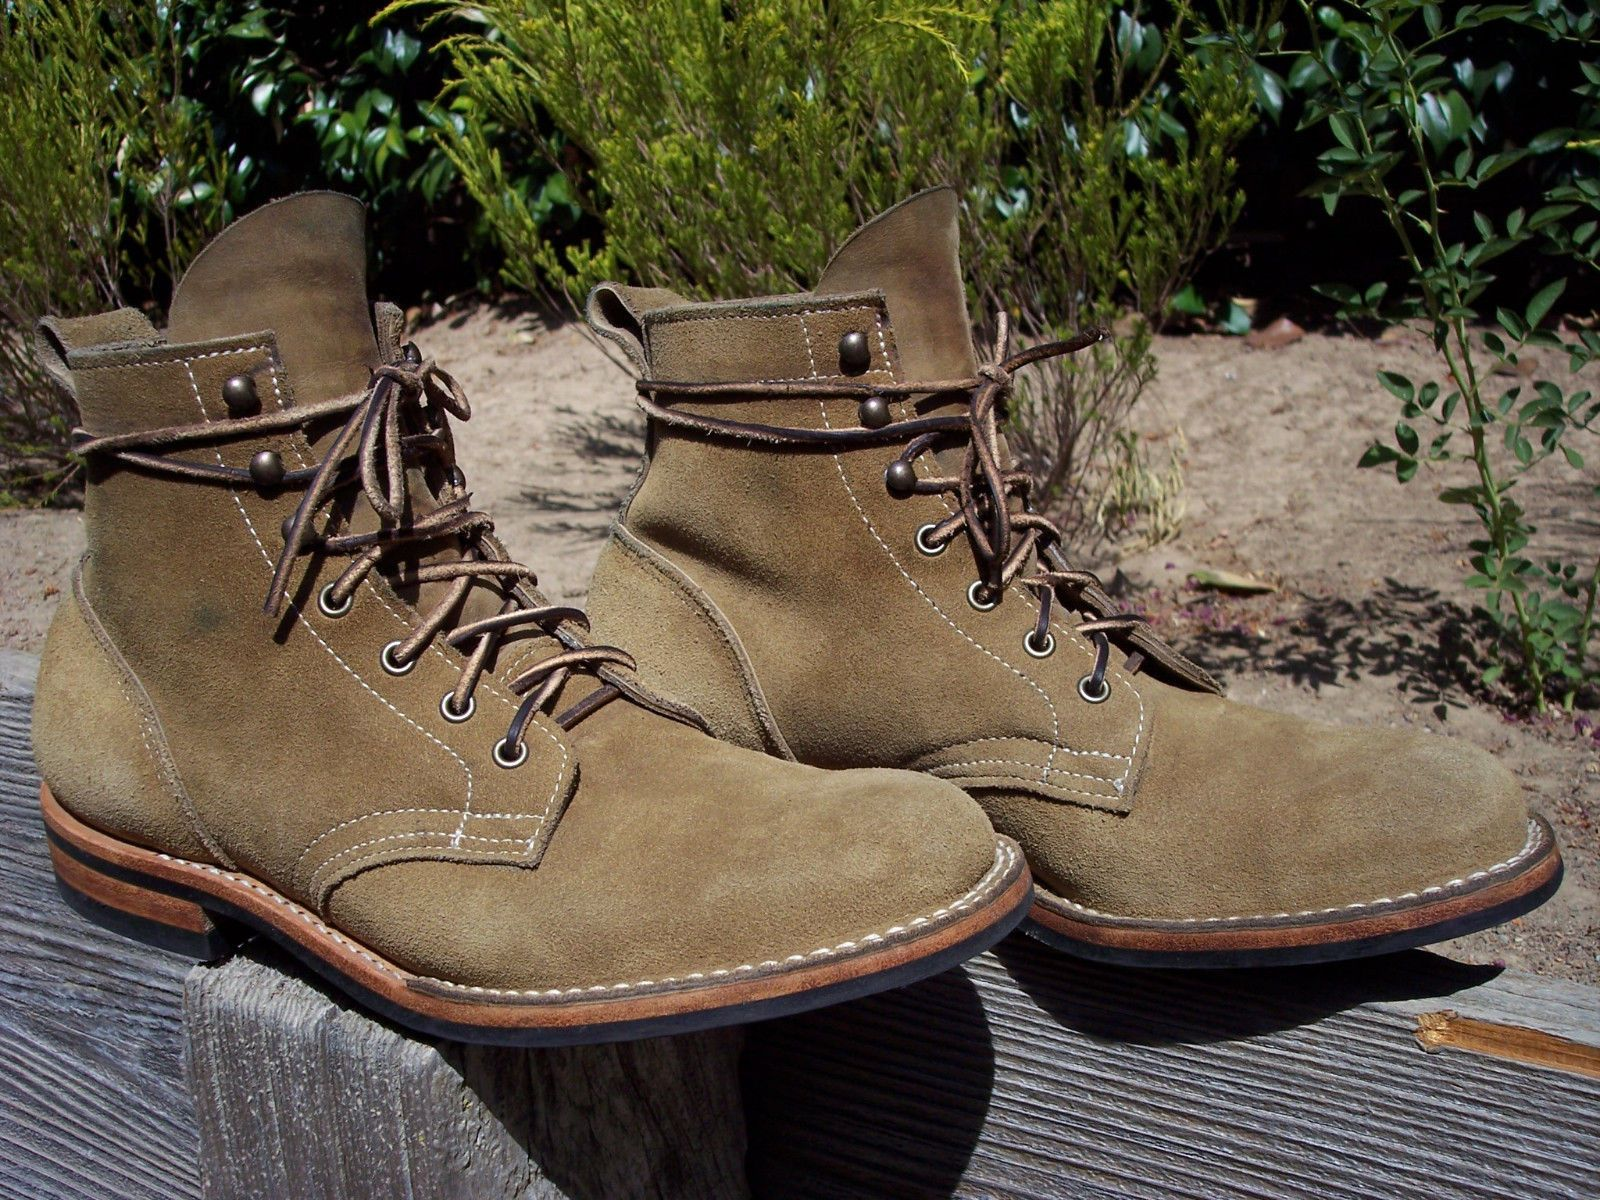 Truman Boot Co Coyote Rough Out Leather Boots Boots Leather Boots Rugged Boots